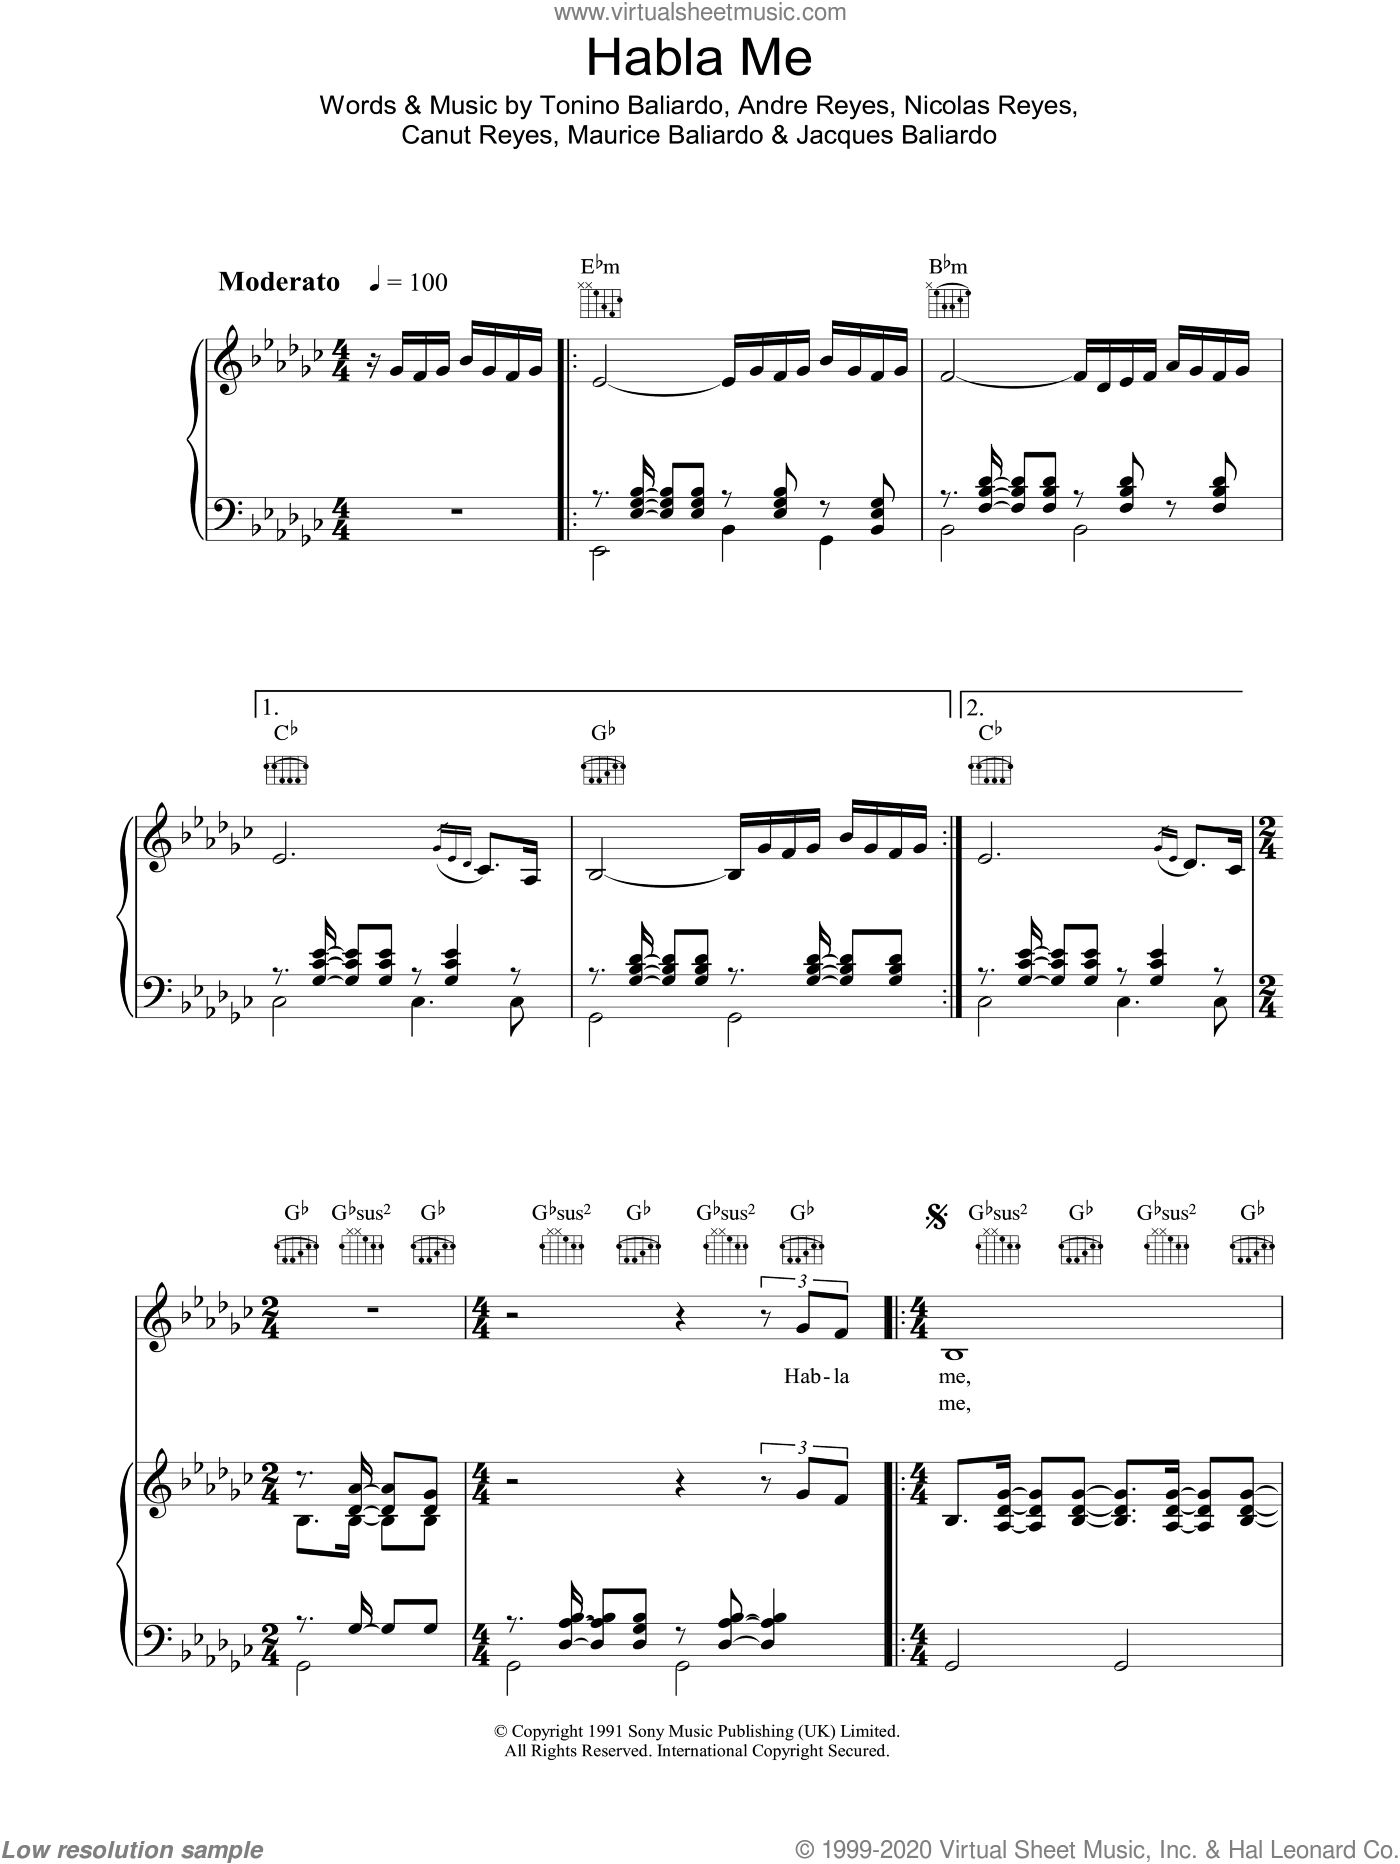 Habla Me sheet music for voice, piano or guitar by Andre Reyes